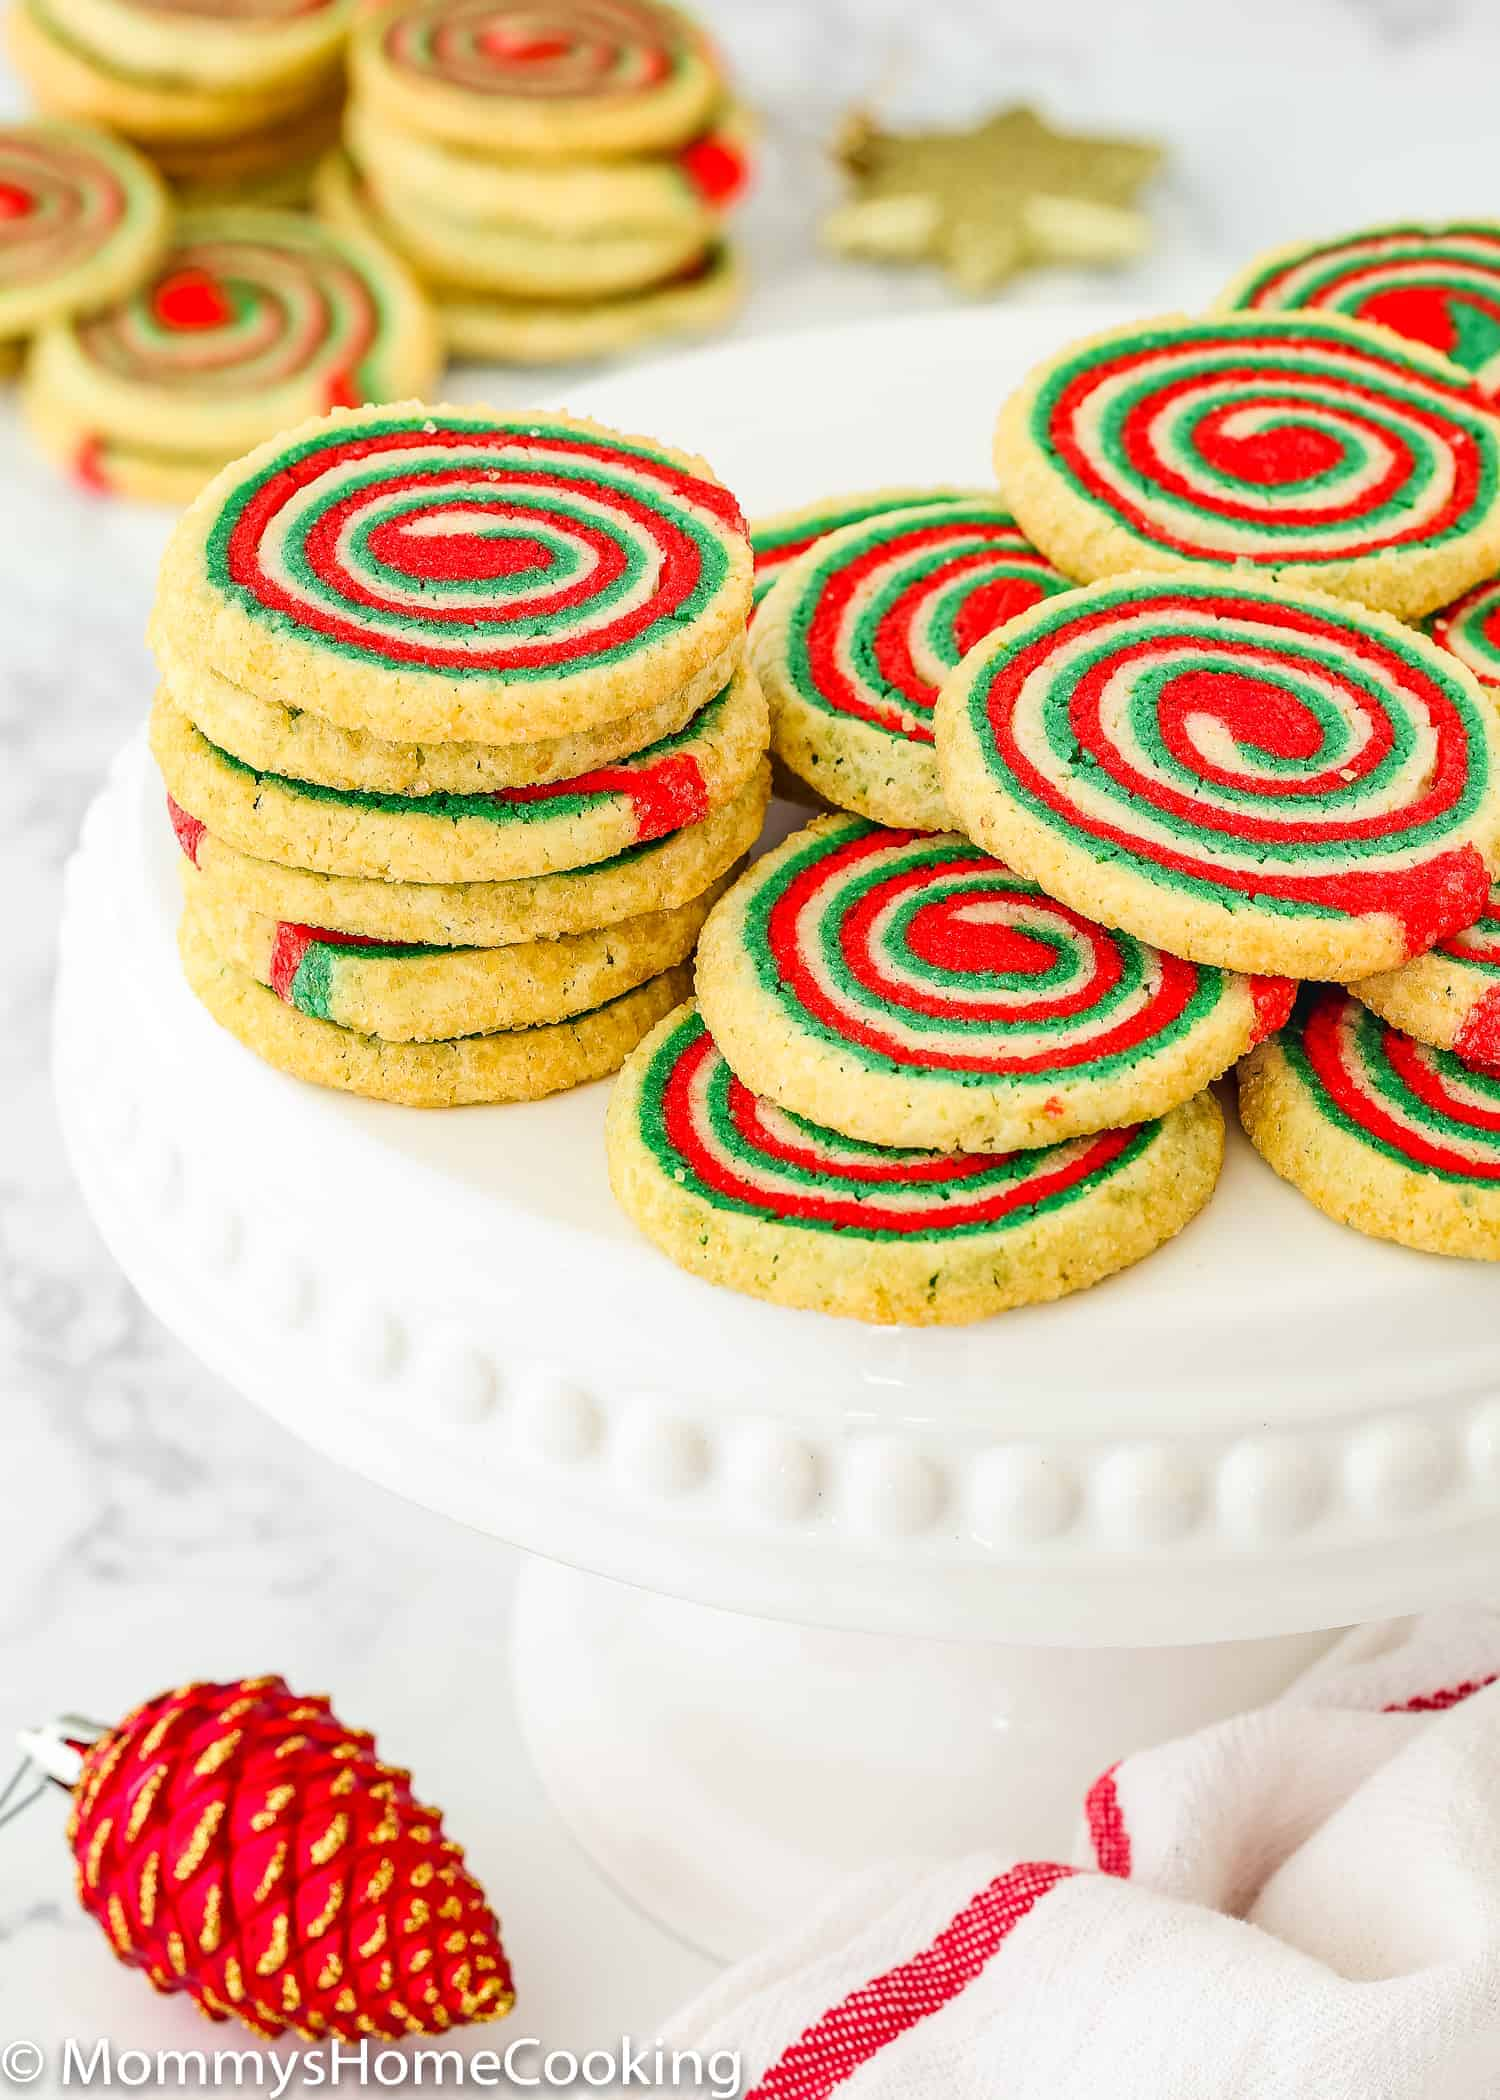 These Eggless Icebox Christmas Pinwheel Cookies are our family's new favorite Christmas cookie recipe! They're crisp and buttery, and so fun to make. Great for gifting or leaving out for Santa. https://mommyshomecooking.com